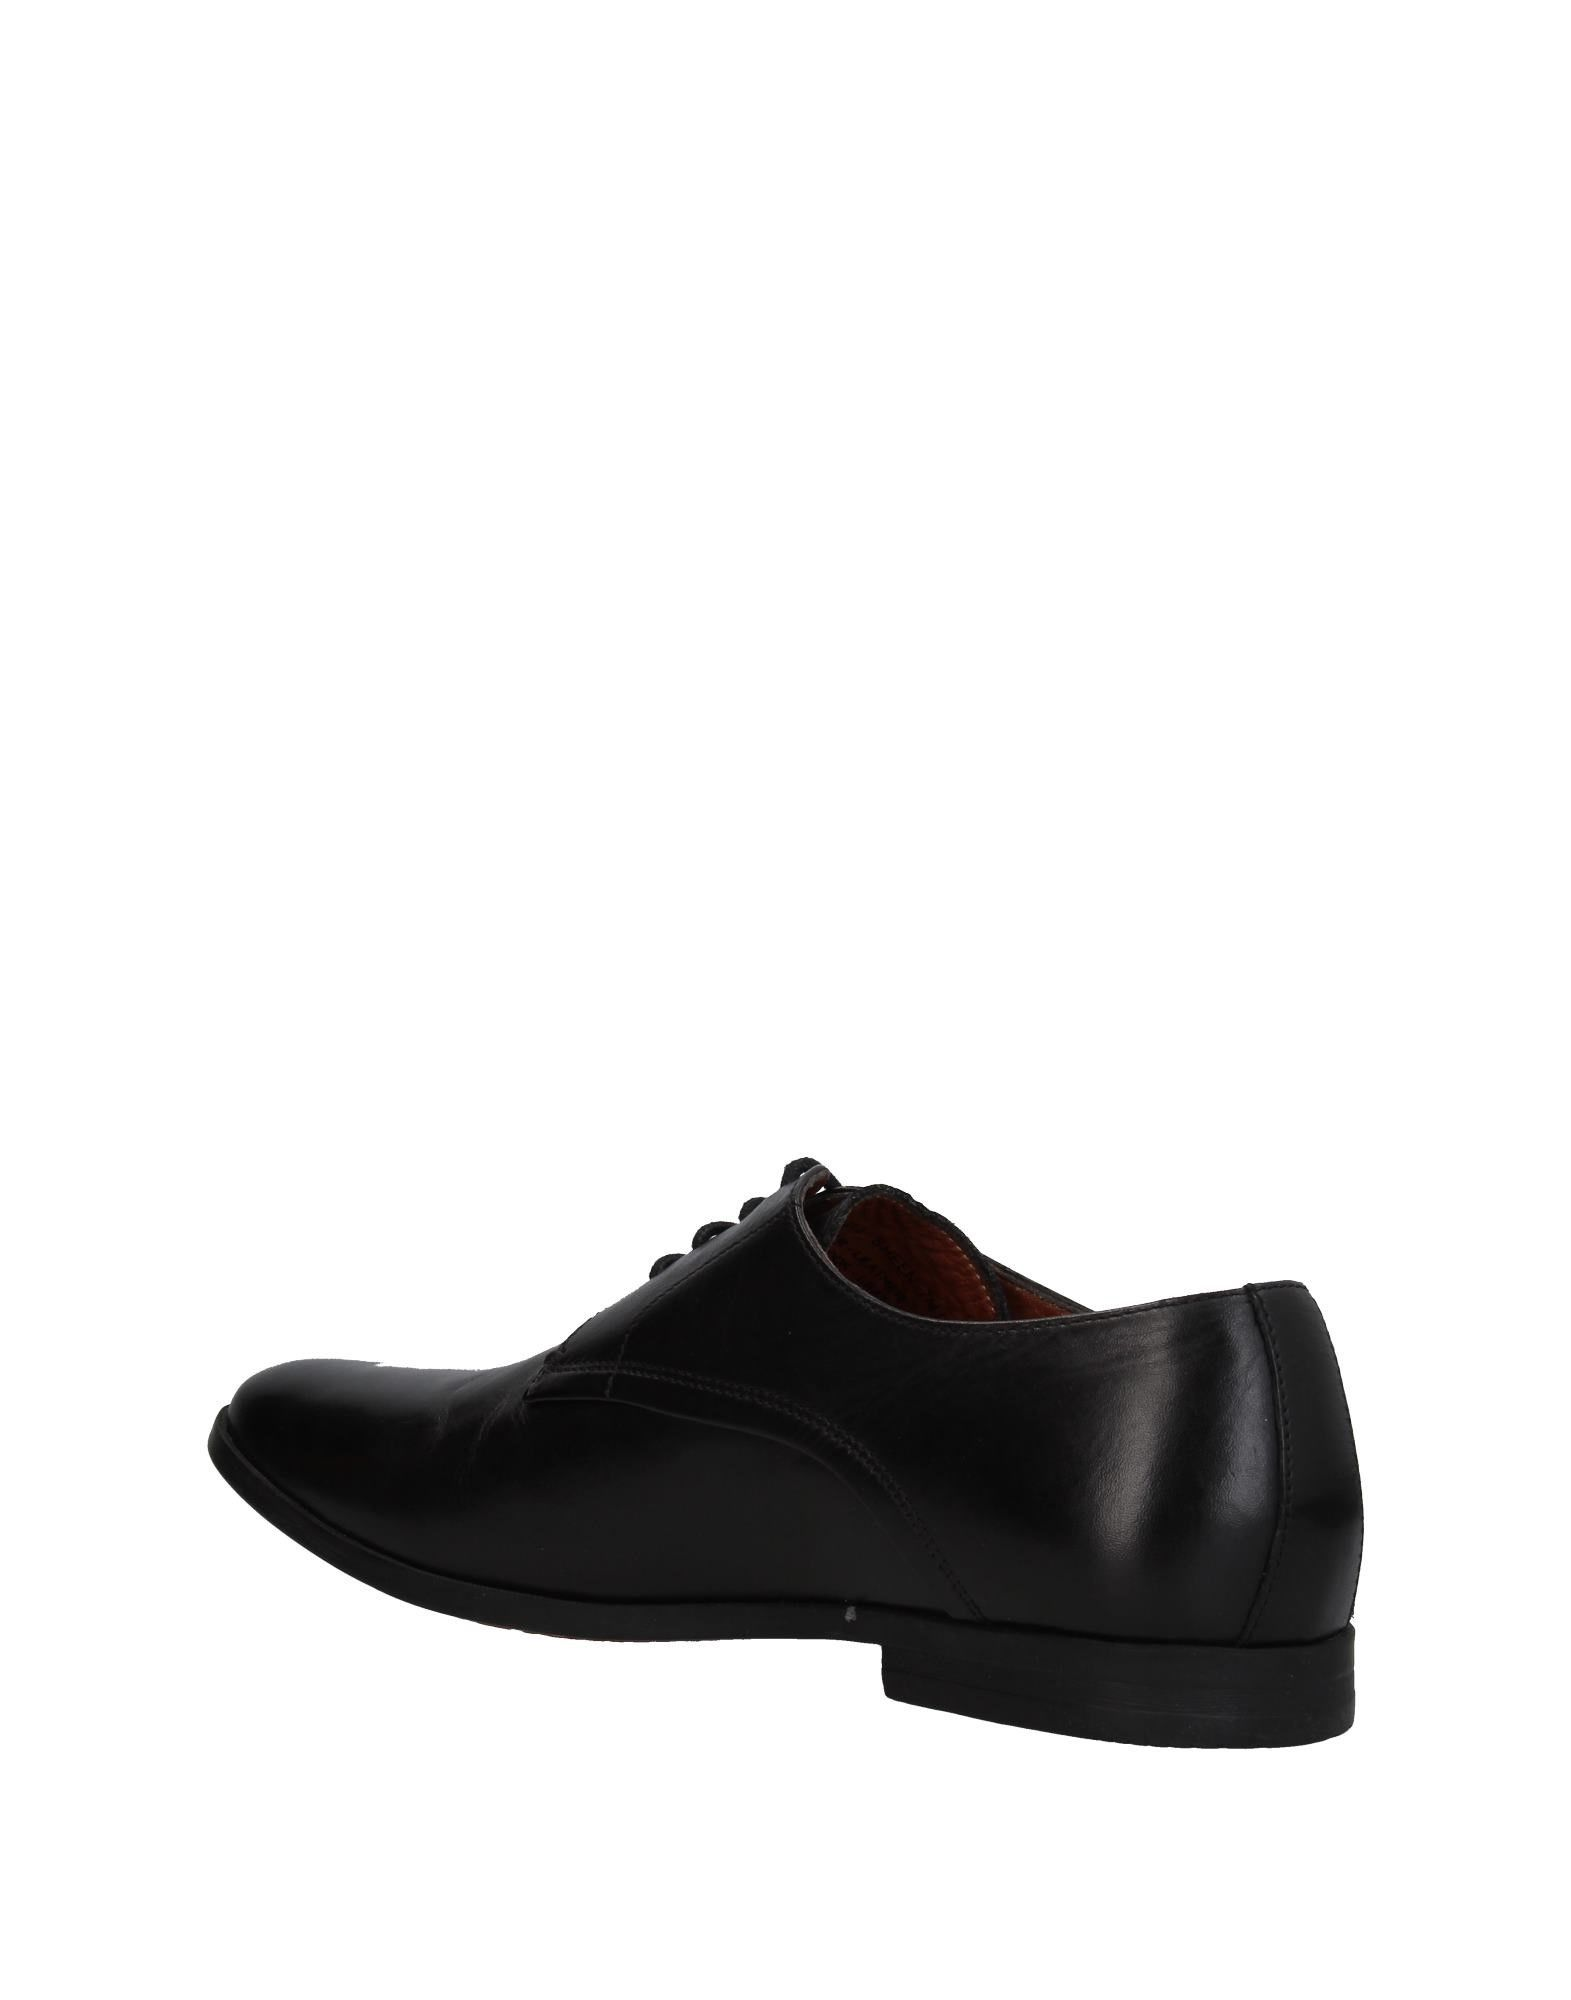 Chaussures À Lacets Frank Wright Homme - Chaussures À Lacets Frank Wright sur